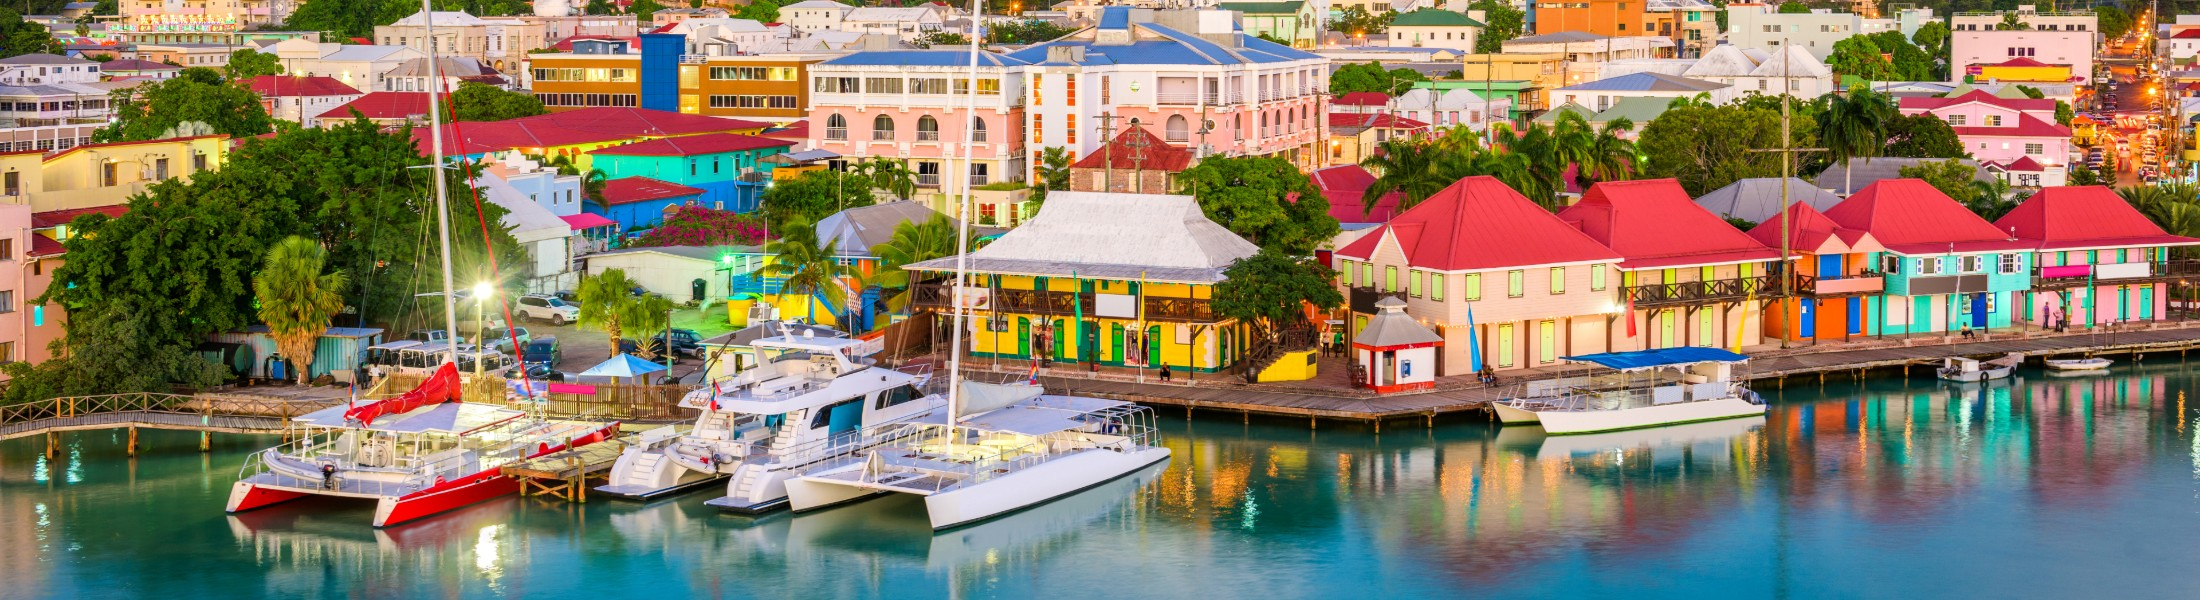 Colourful houses on a harbour in the Caribbean